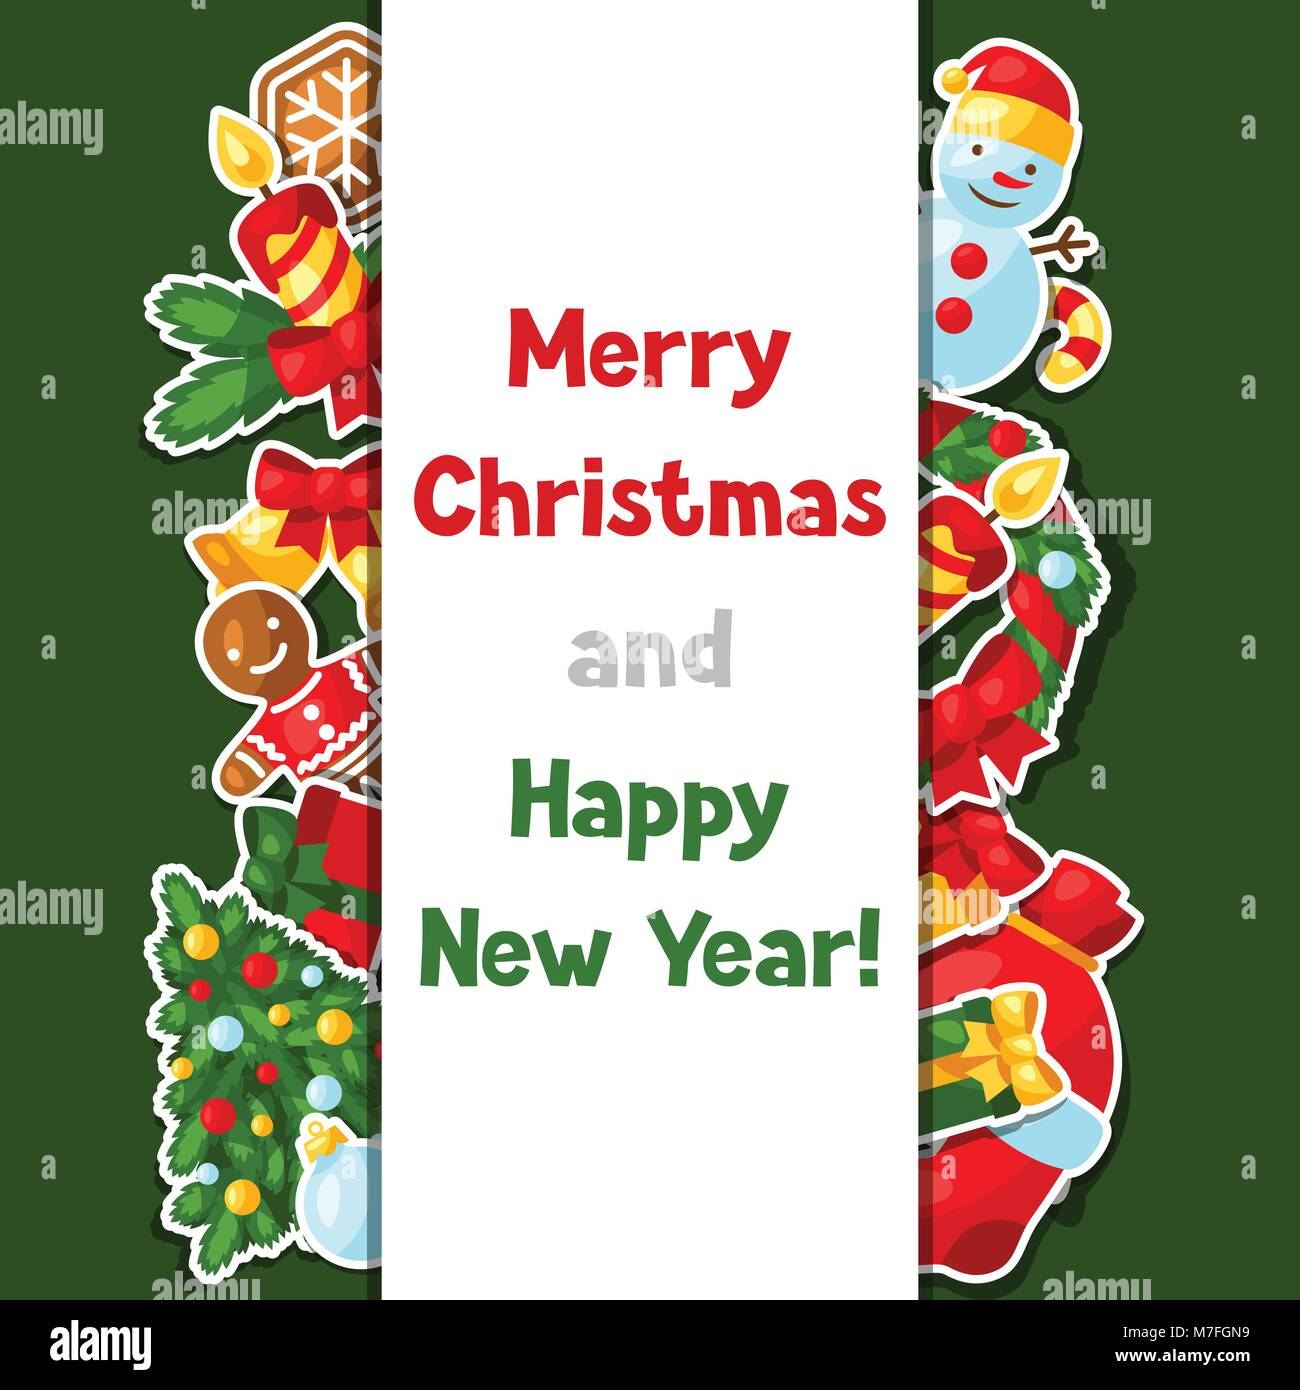 merry christmas and happy new year sticker invitation card